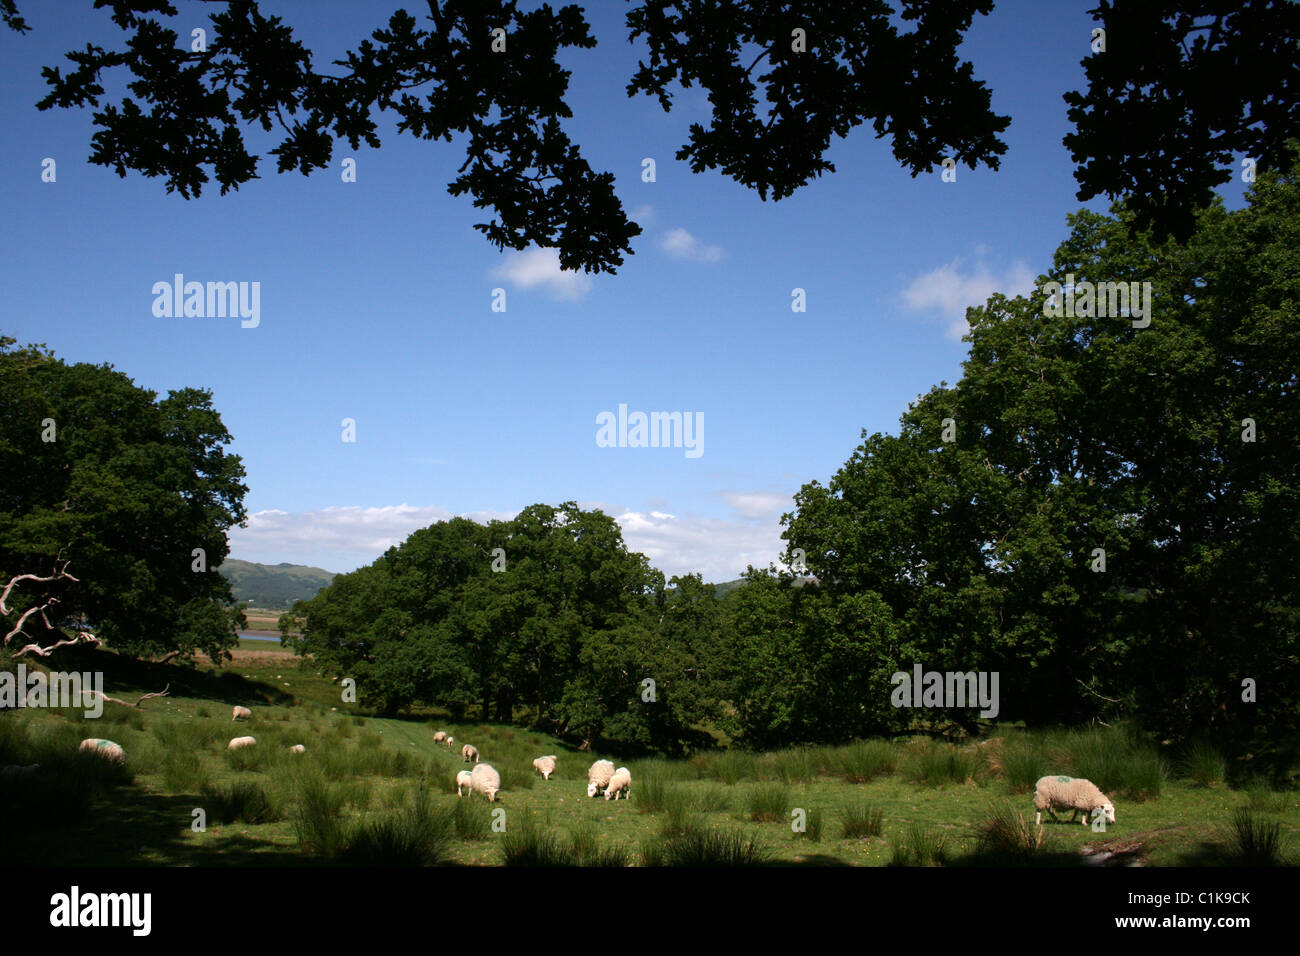 Welsh Country Scene With Sheep Grazing On Rough Pasture Amongst Trees - Stock Image